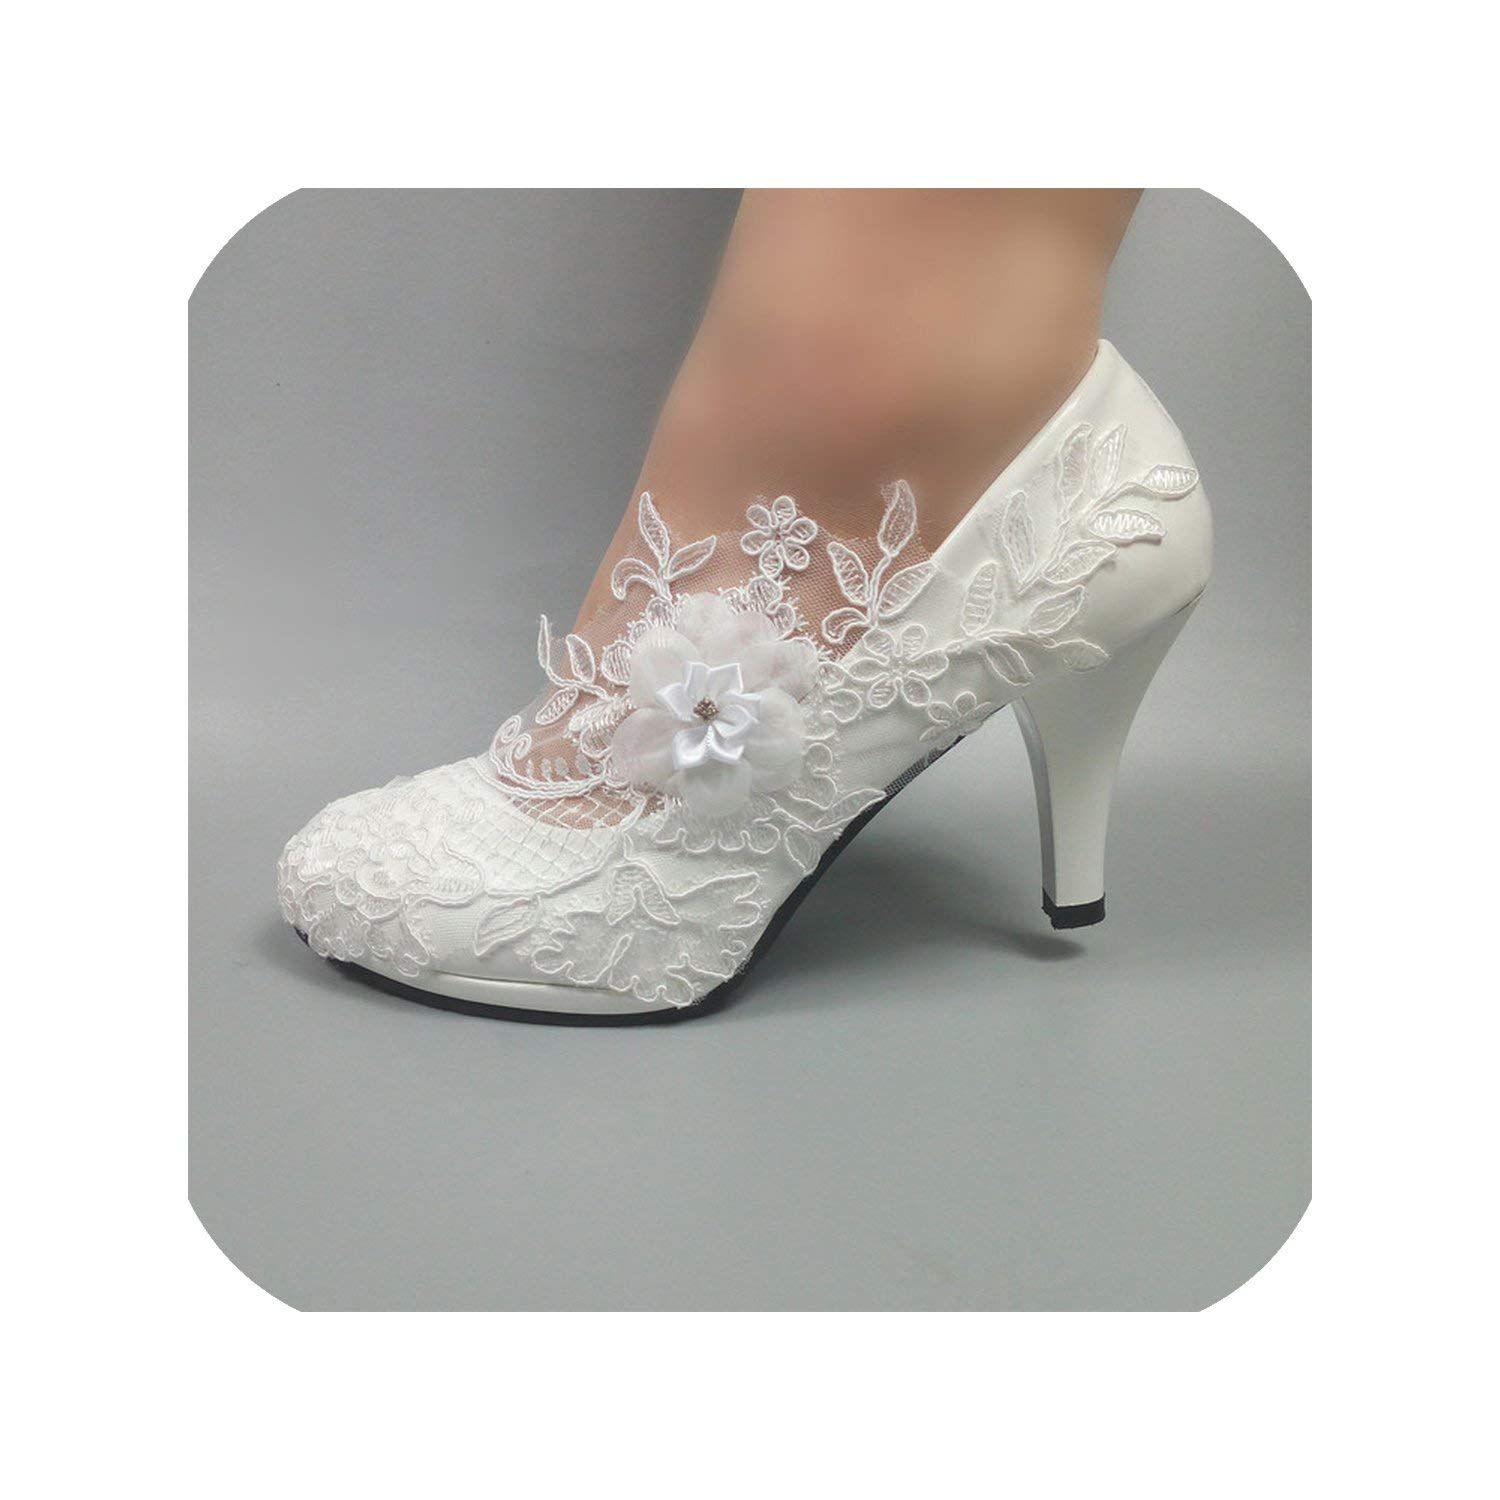 11cm heel White Flower Pumps New Womens Wedding shoes Bride High Heels Platform shoes